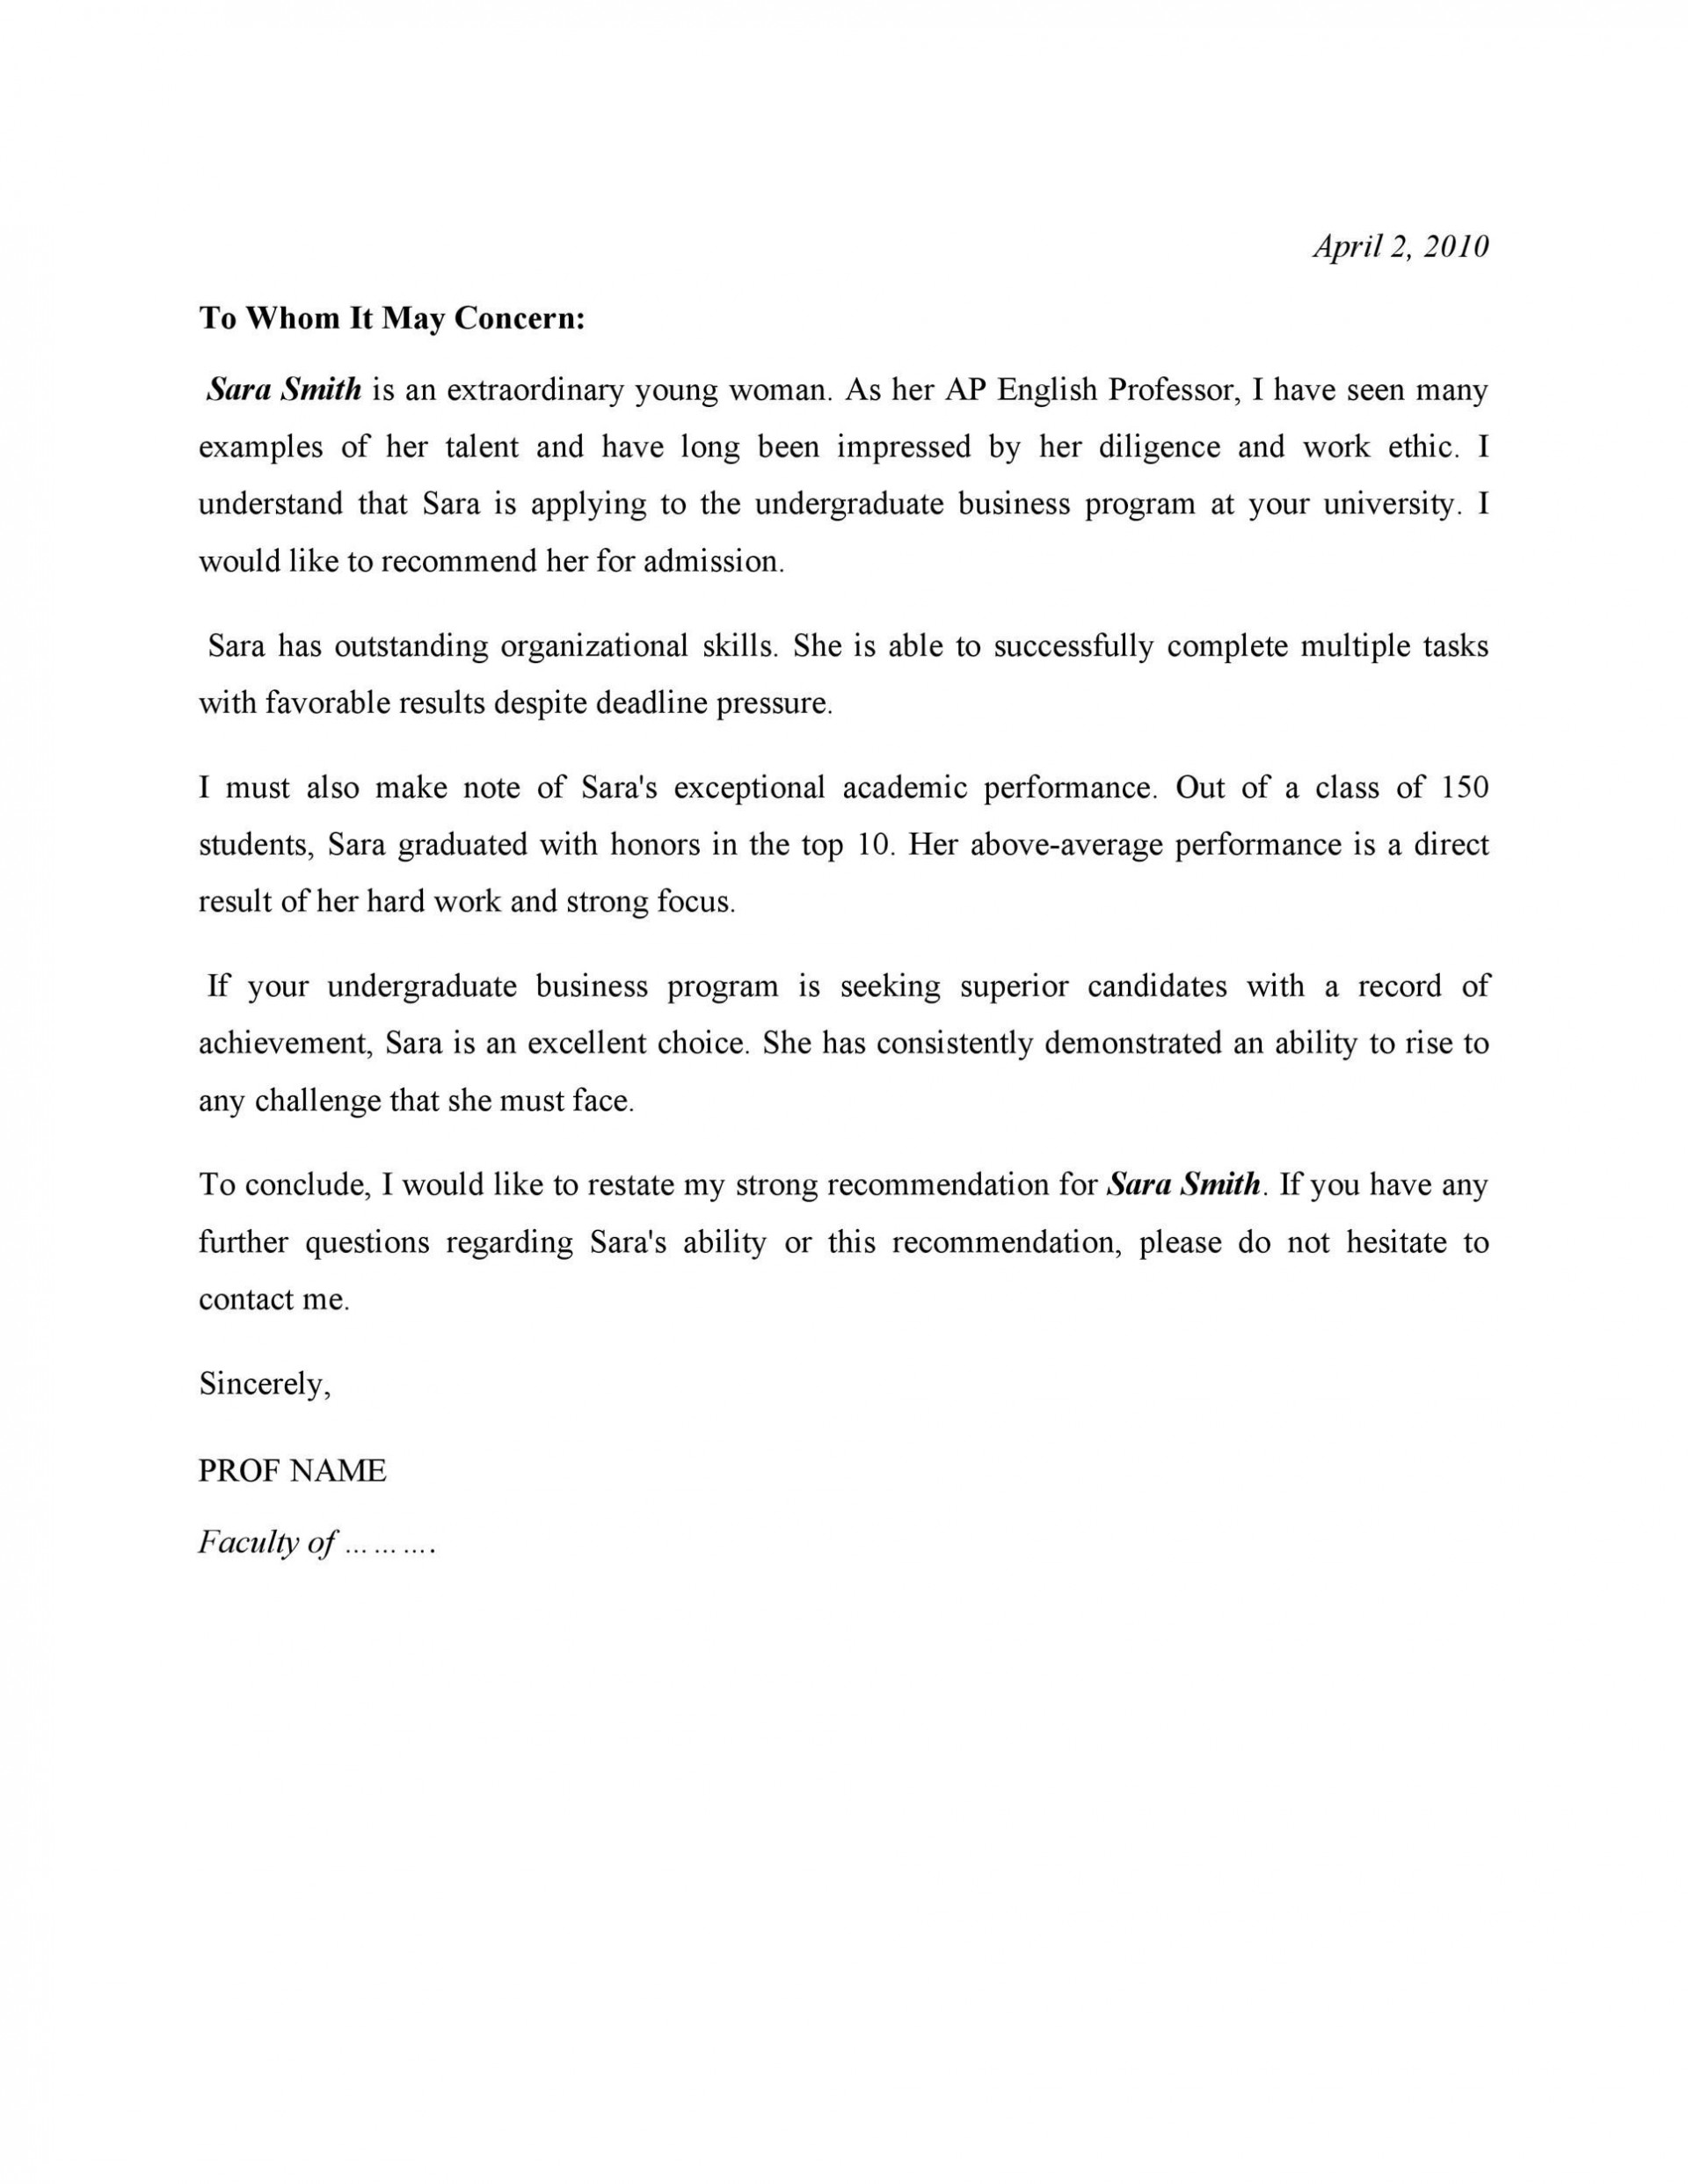 006 Frightening Letter Of Recommendation Template For College Student Image  Sample From Professor1920